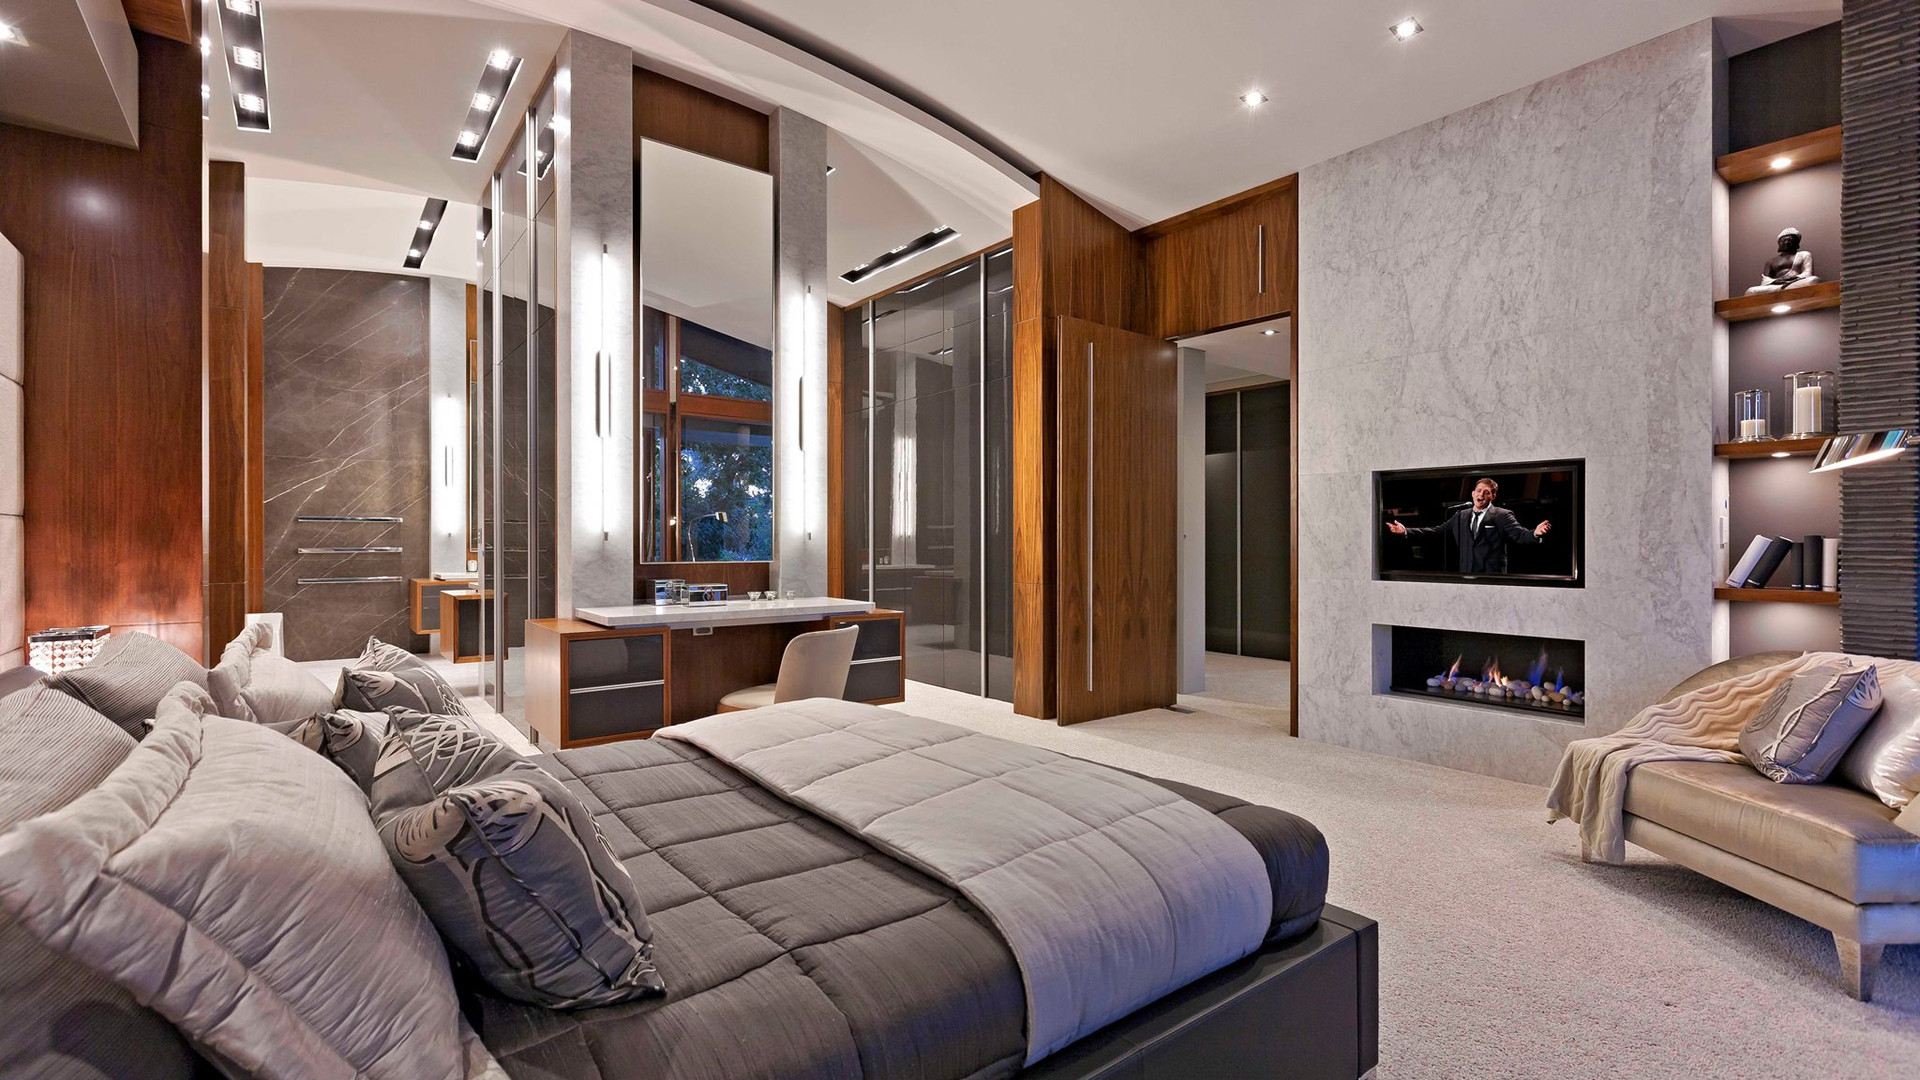 Master bedroom with lighting control using C-bus as well as audiovisual control with CCTV and security